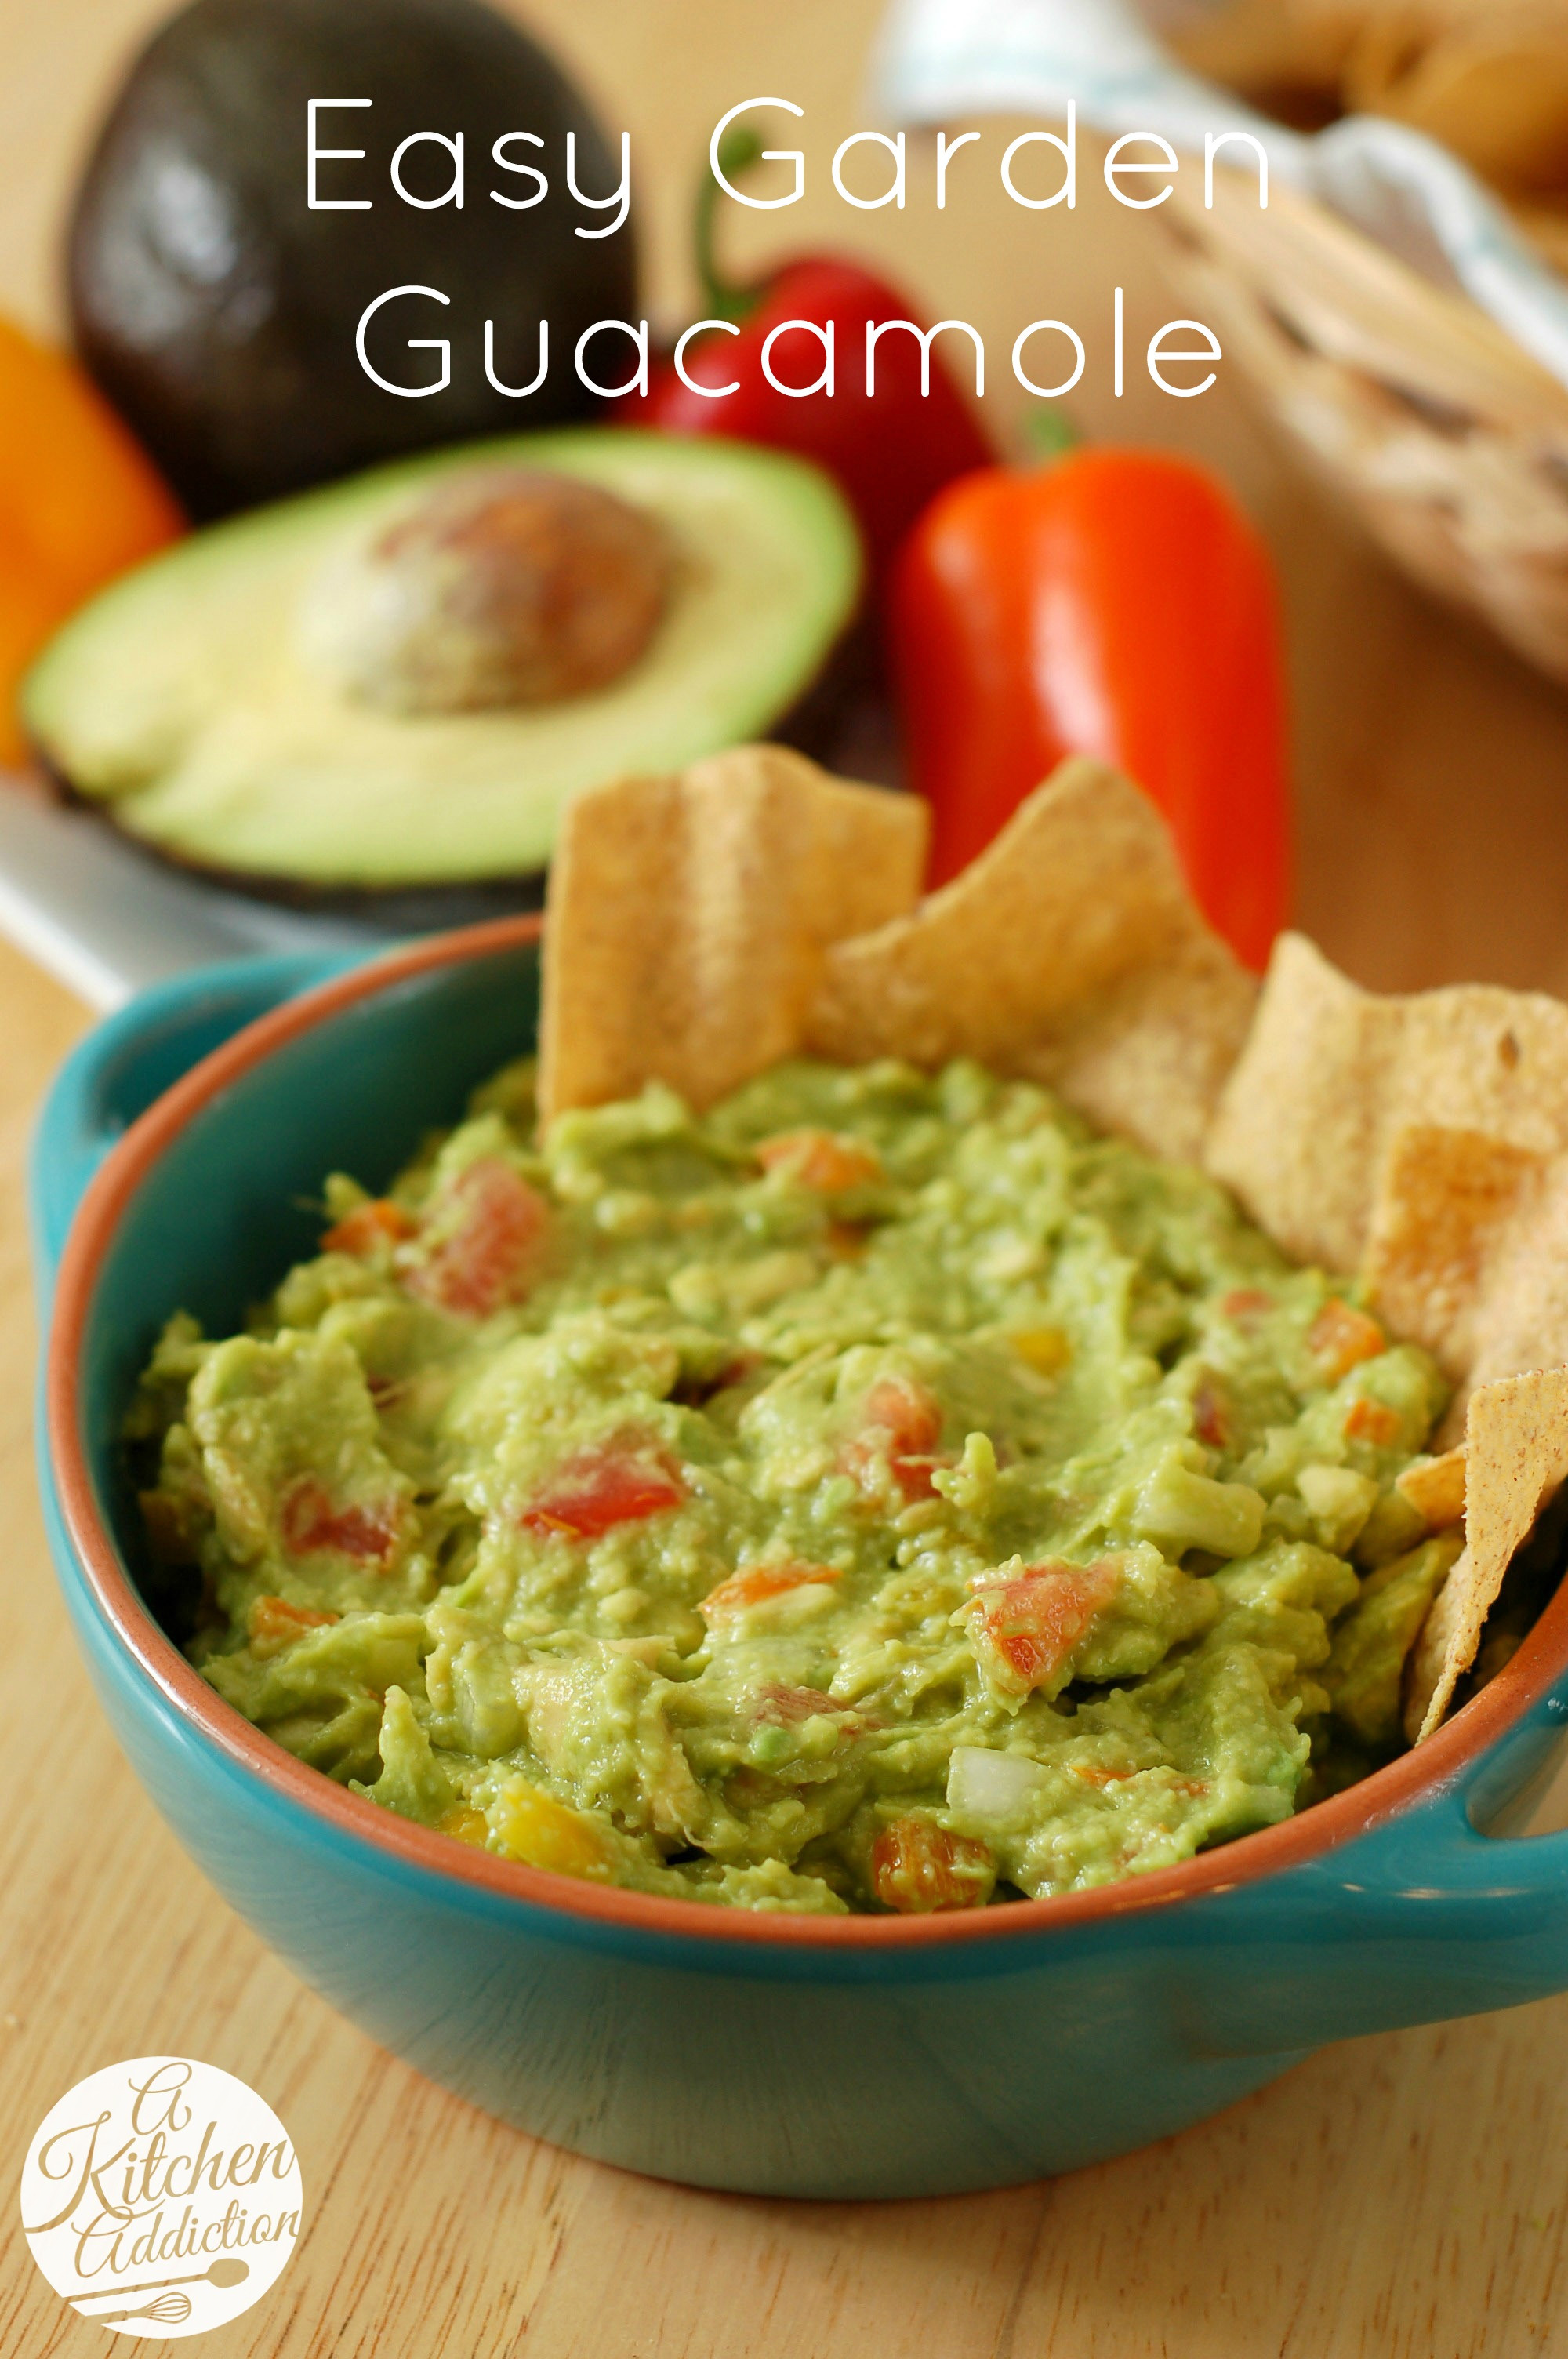 Healthy Guacamole Recipe  Easy Garden Guacamole A Kitchen Addiction